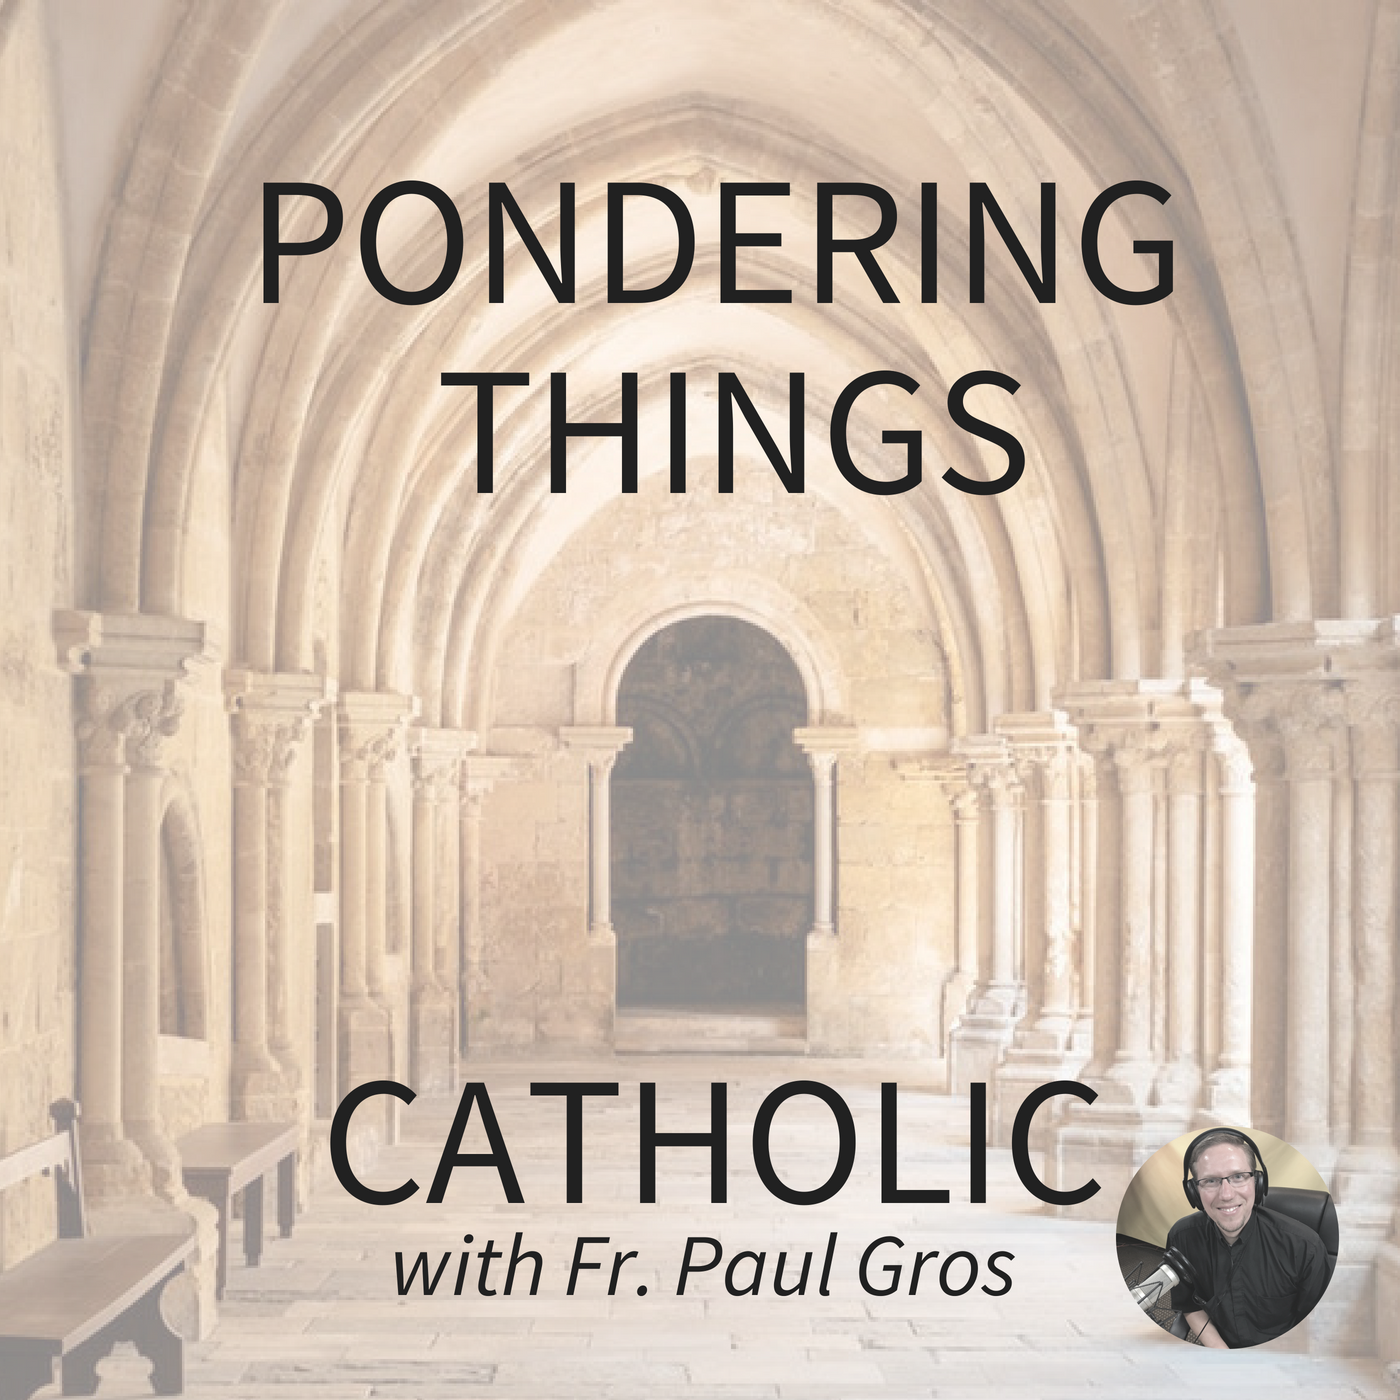 Pondering Things Catholic with Fr. Paul Gros